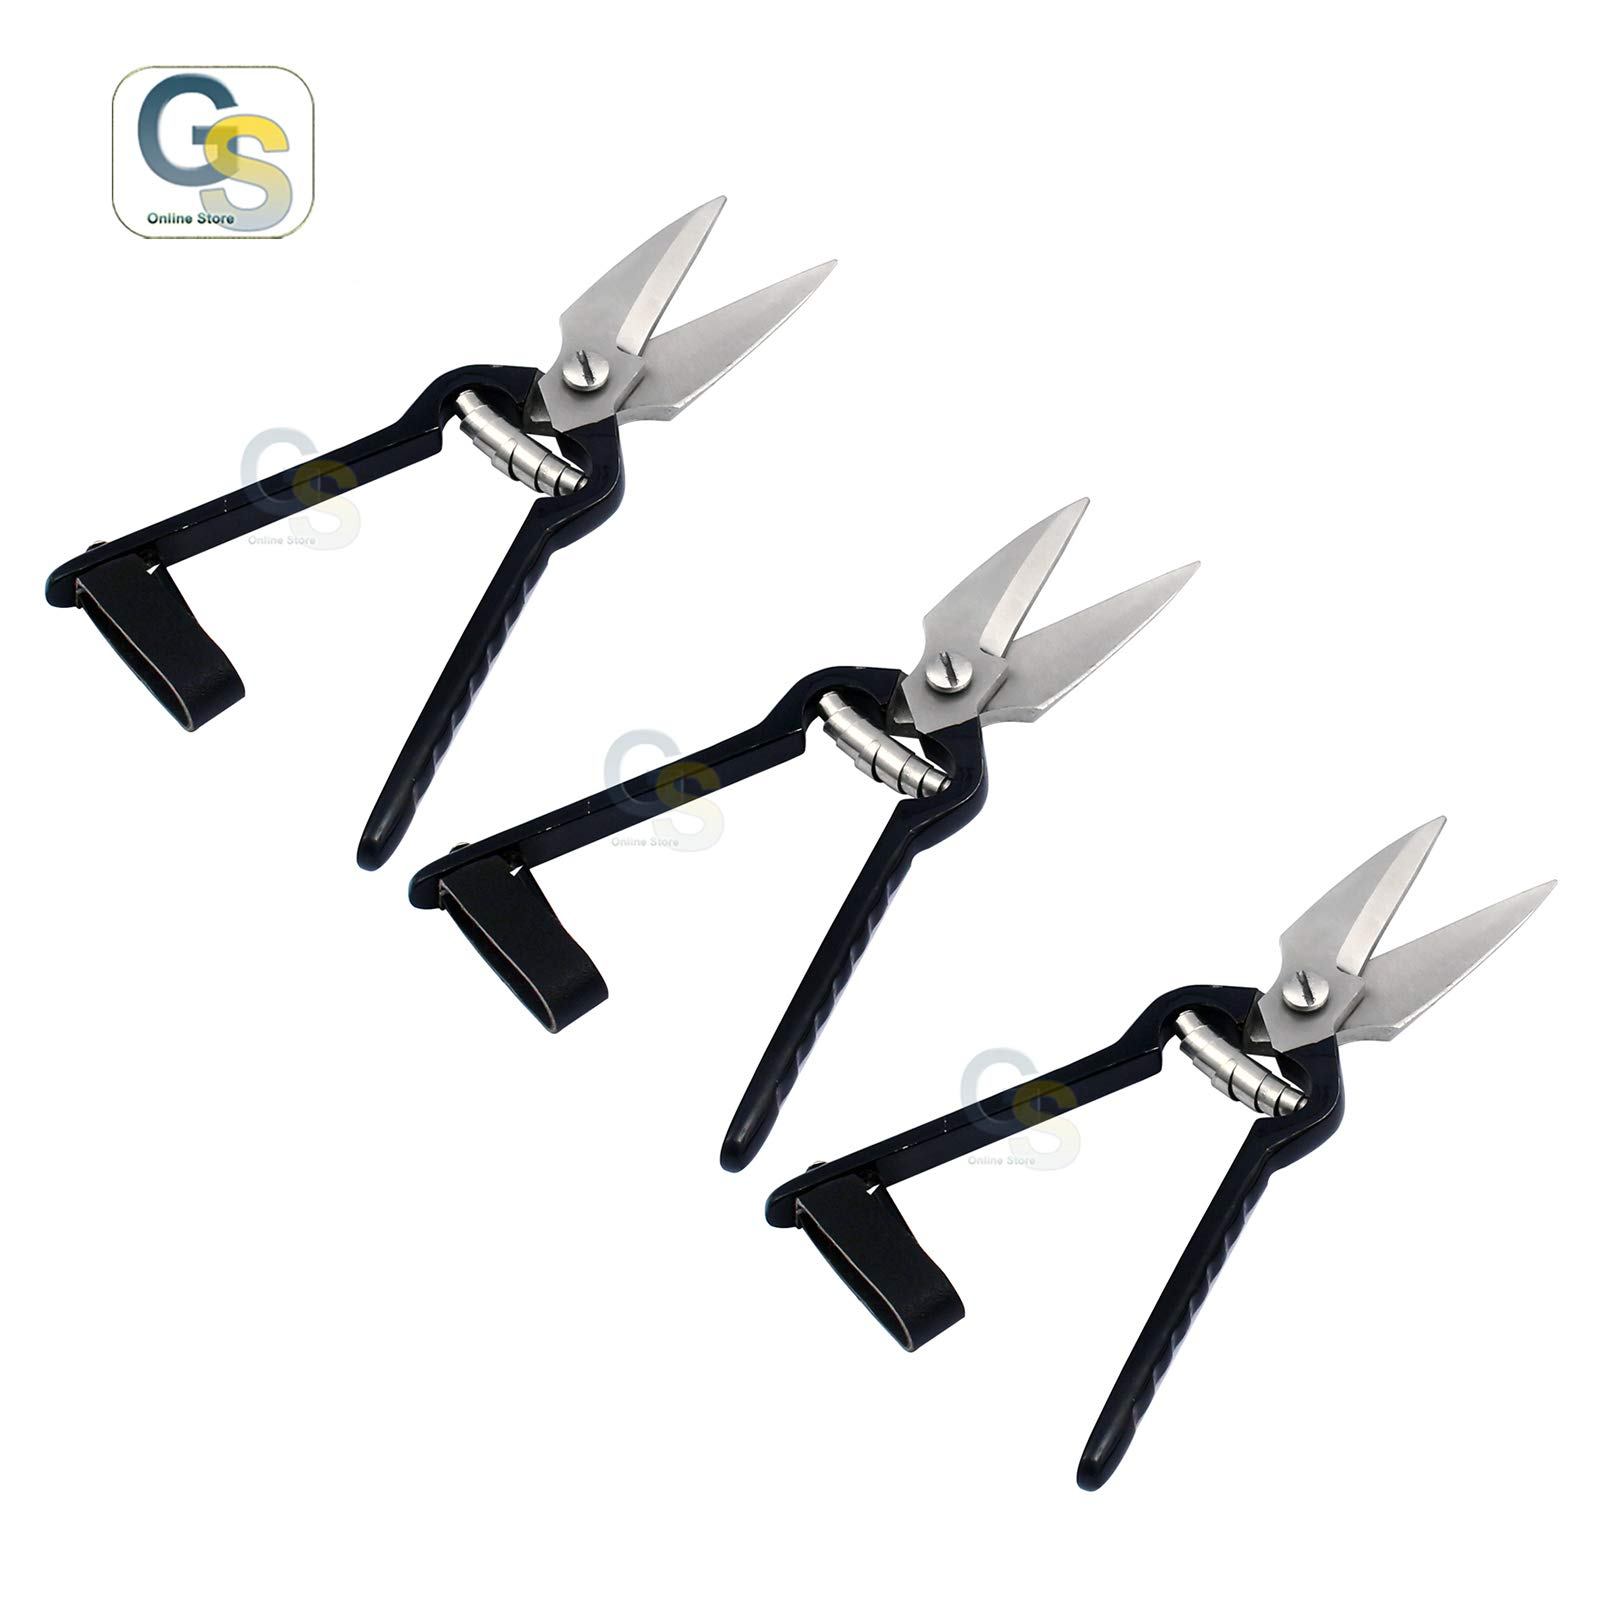 G.S Lot of 3 Pcs Foot Rot Shear Sheep Shears Hoof Trimming Scissors Sharp Blades Black Handle Hoof Snips Best Quality by G.S Online Store